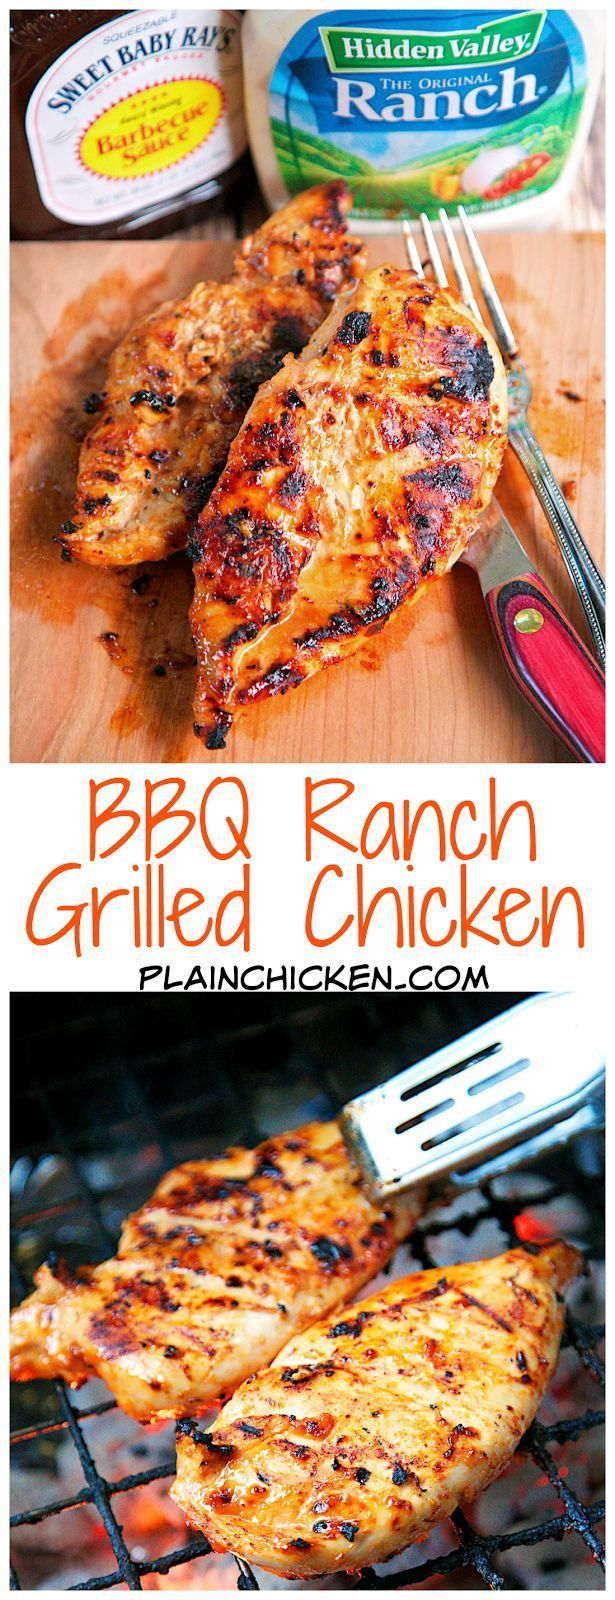 BBQ Ranch Grilled Chicken - only 3 ingredients (including the chicken) - super simple marinade that packs a ton of great flavor! Quick, easy and delicious - my three favorite things!